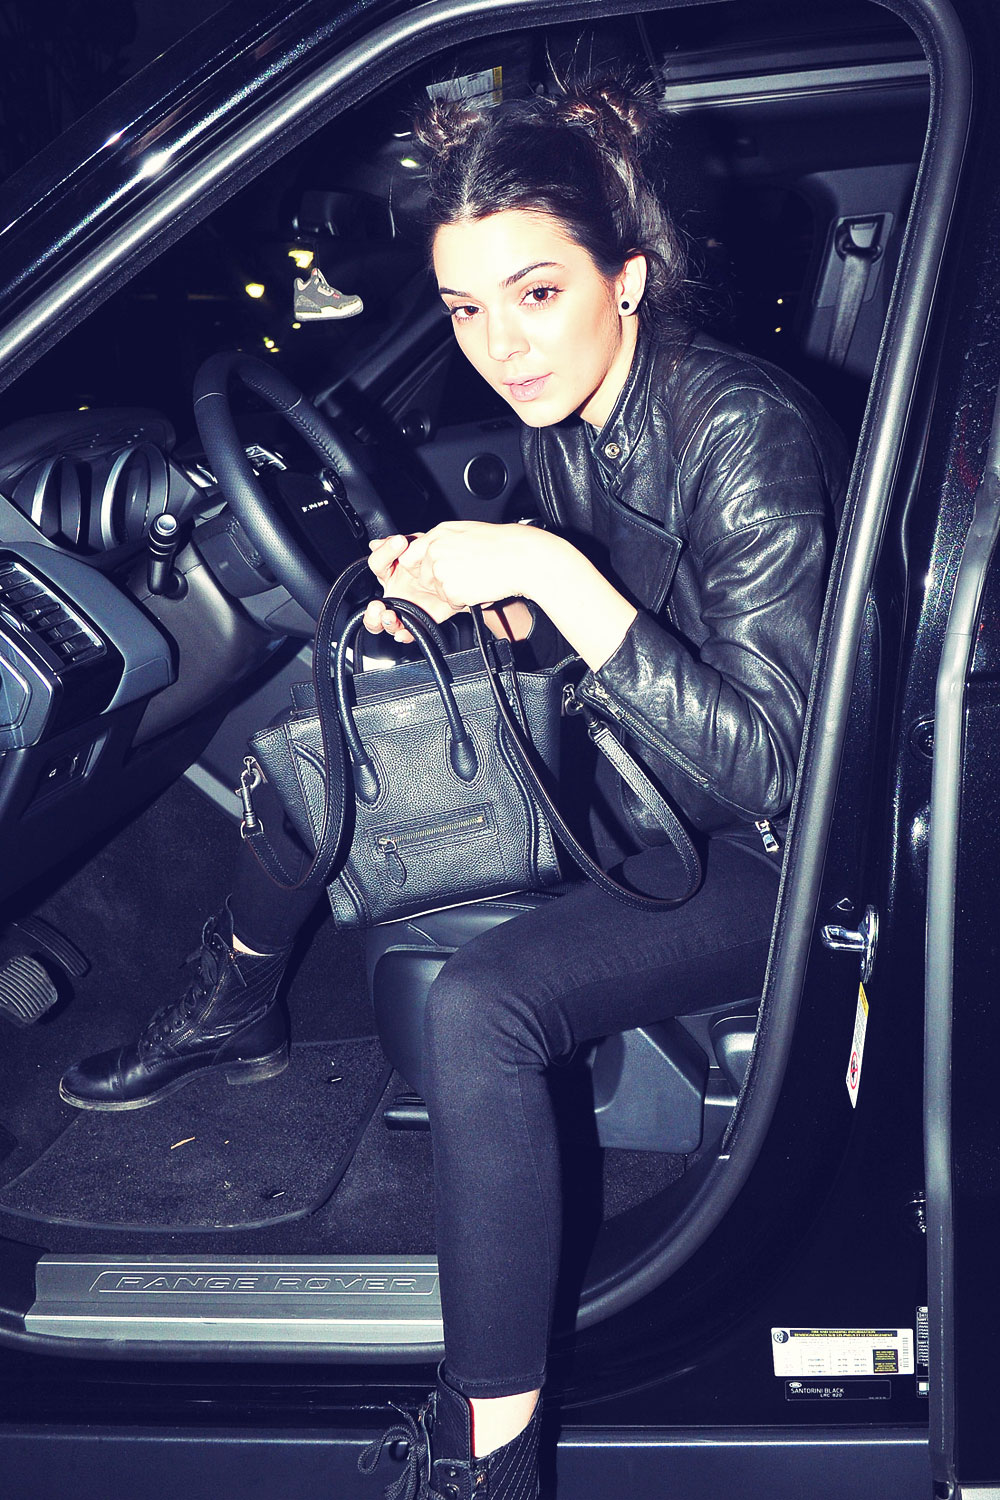 Kendall Jenner at Staples Center to watch Miley Cyrus perform